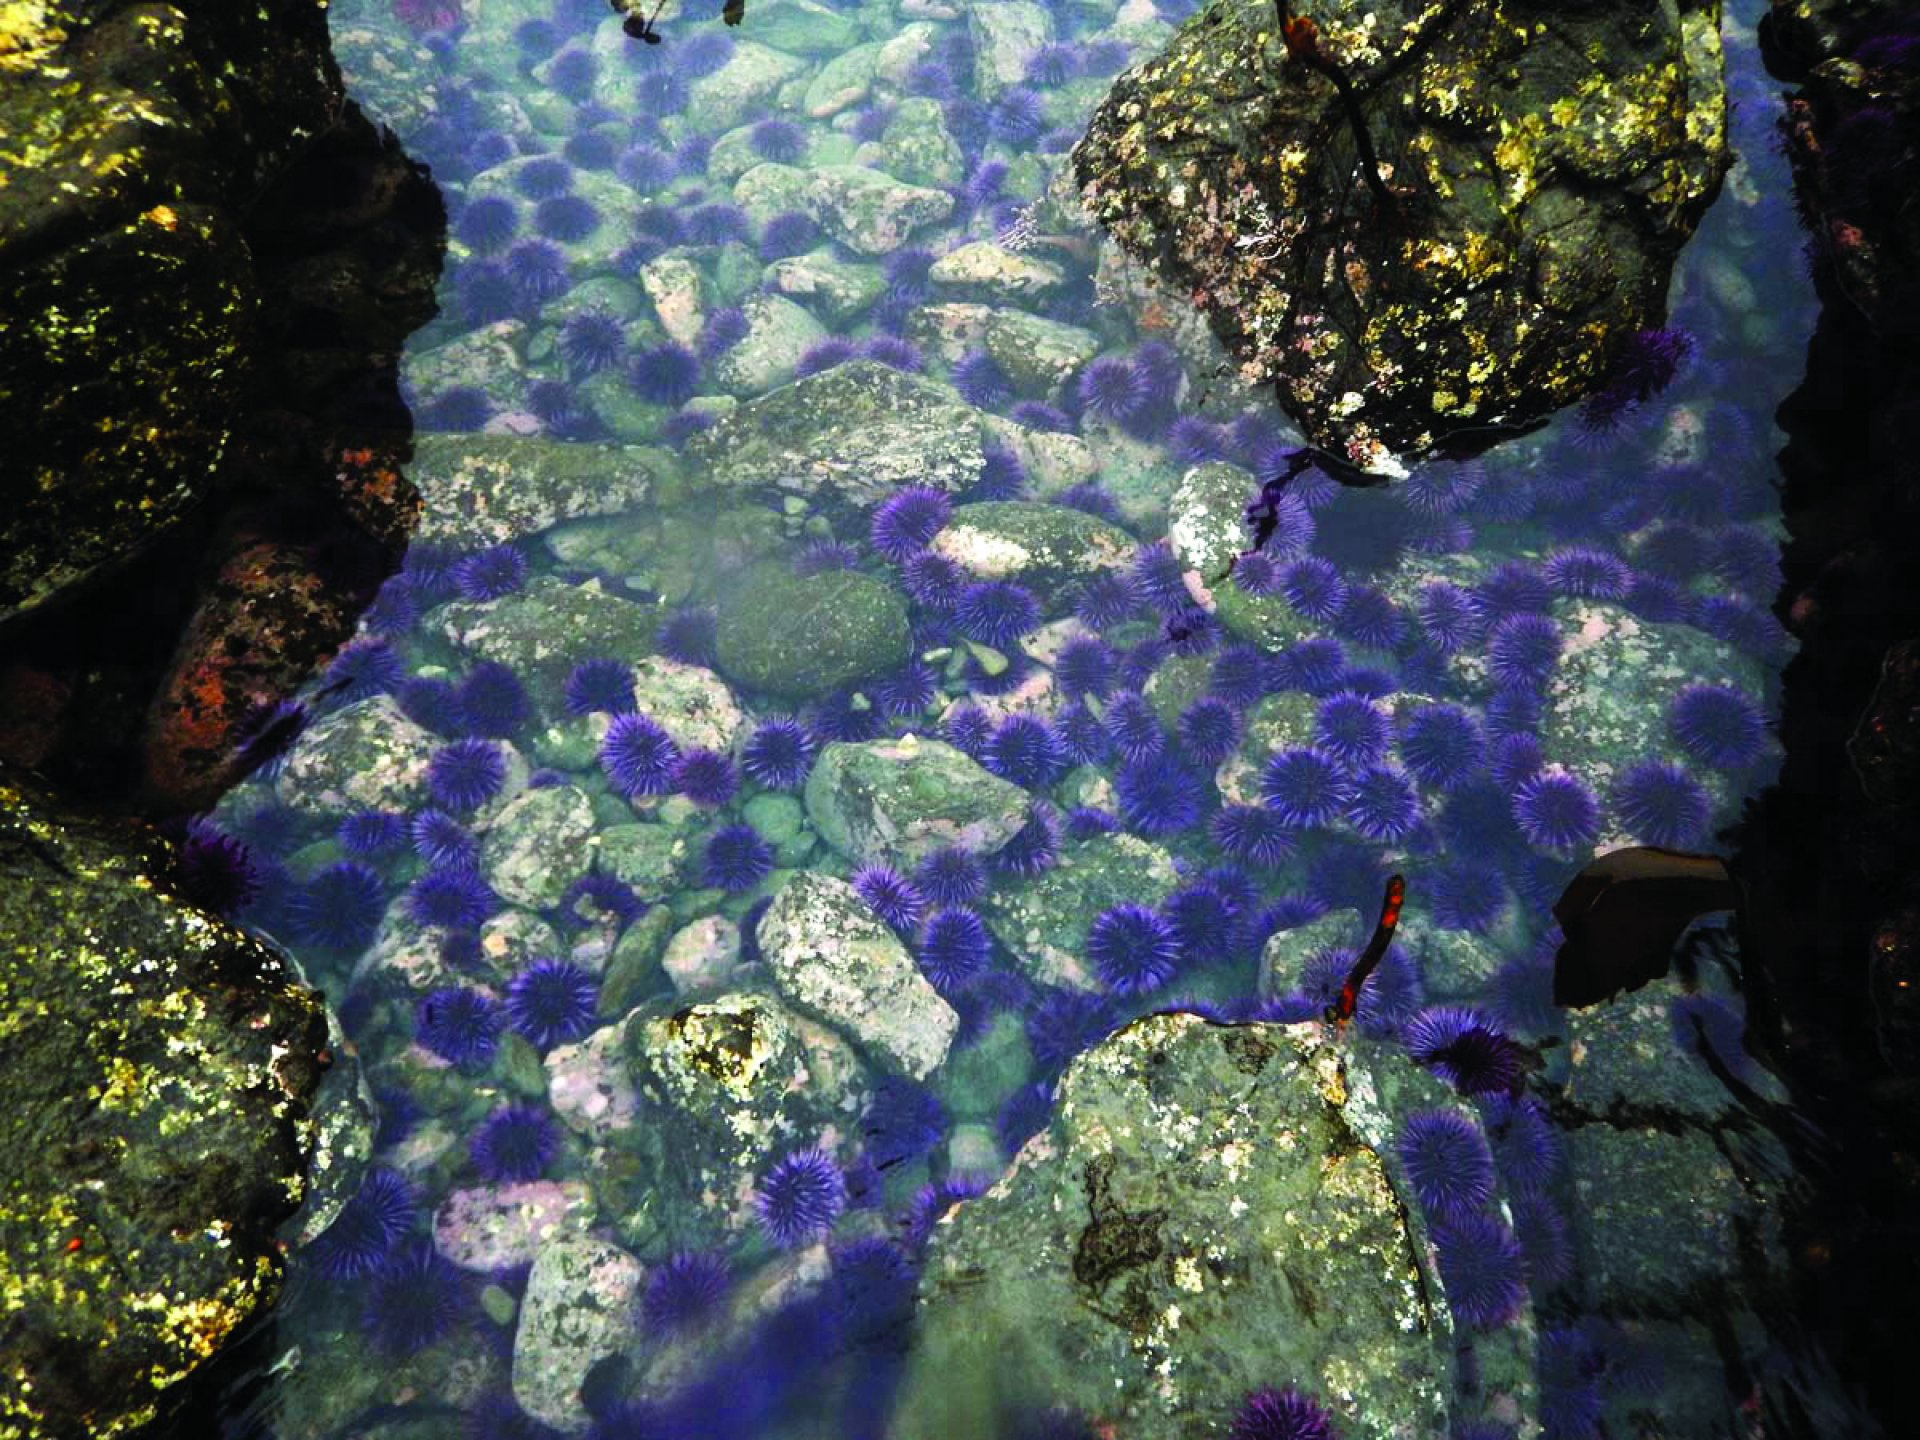 A large herd of sea urchins hanging out in a tide pool on March 27. Photo courtesy of Mike and Julie Kelly.